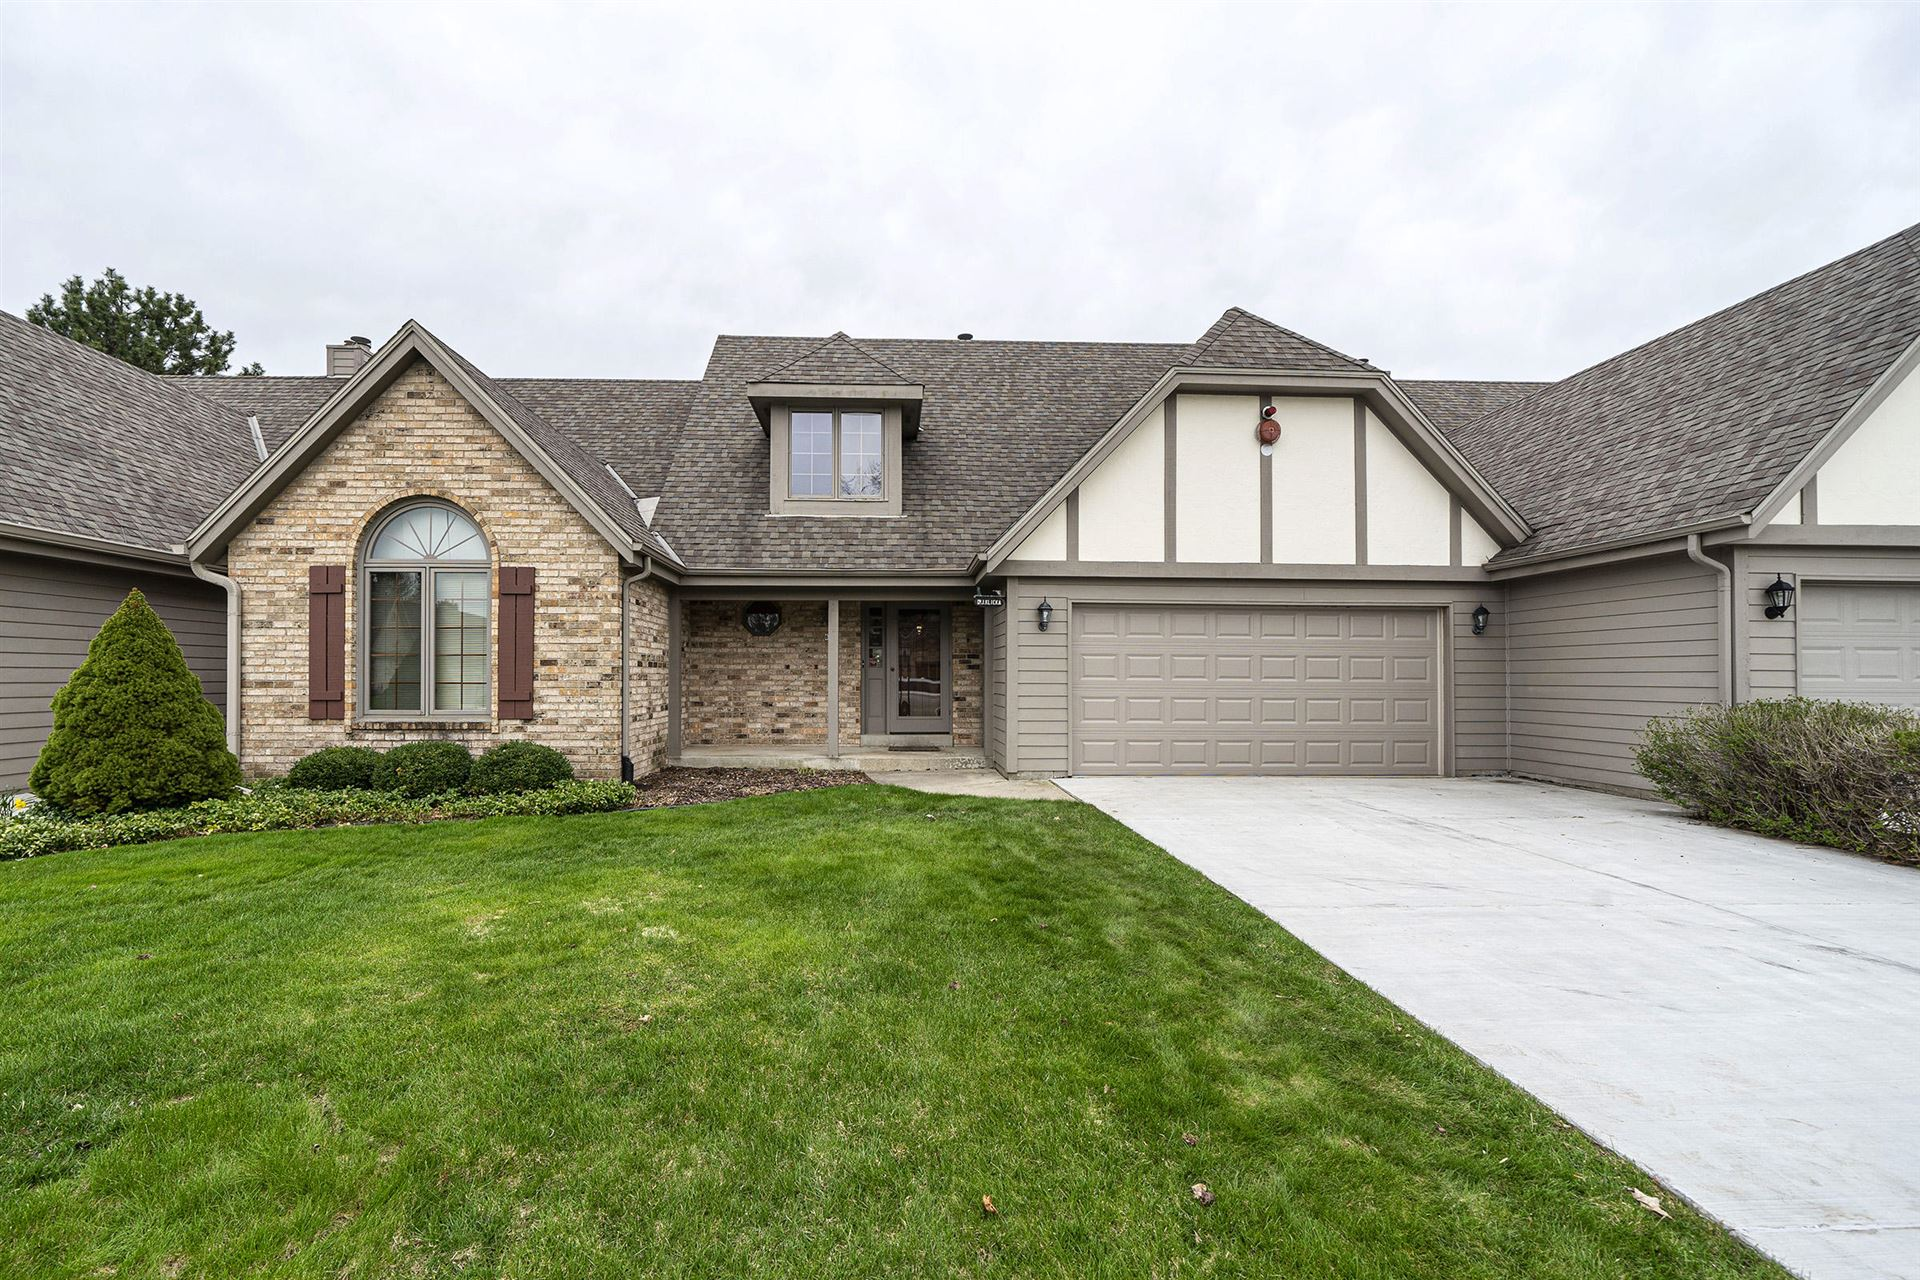 665 Machenry Cir #B, Brookfield, WI 53045 - #: 1687129